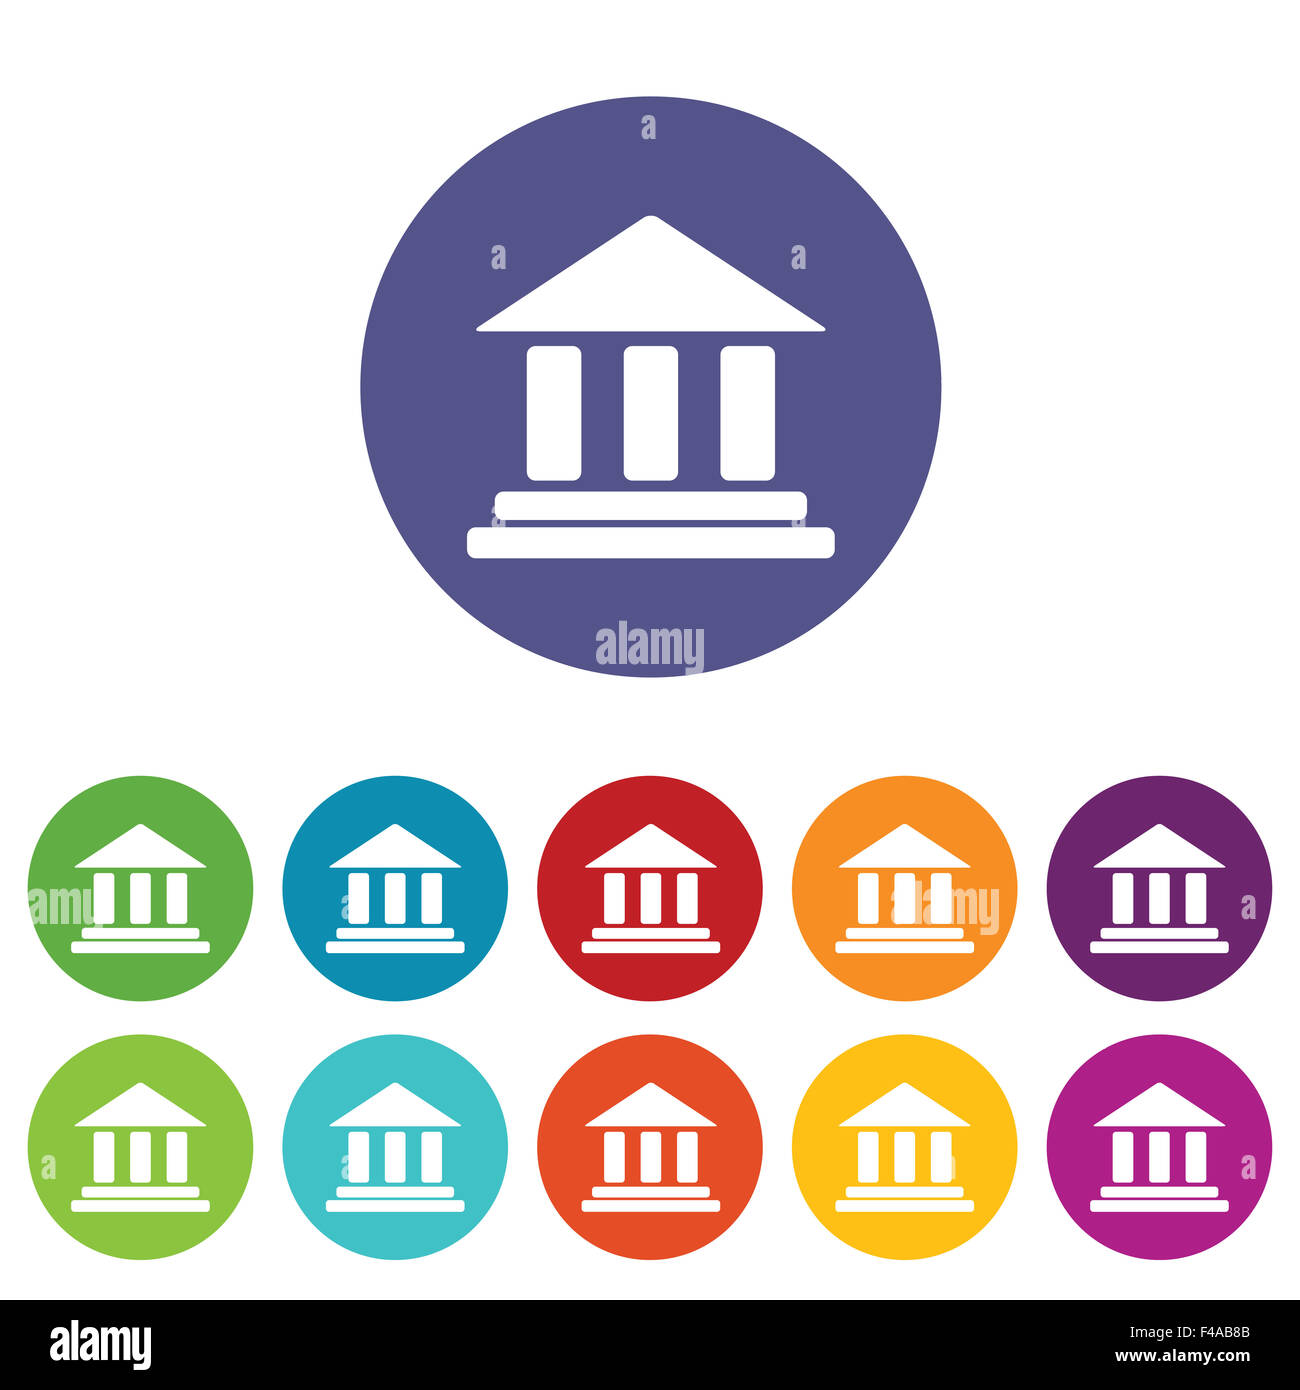 Classical building icon set - Stock Image